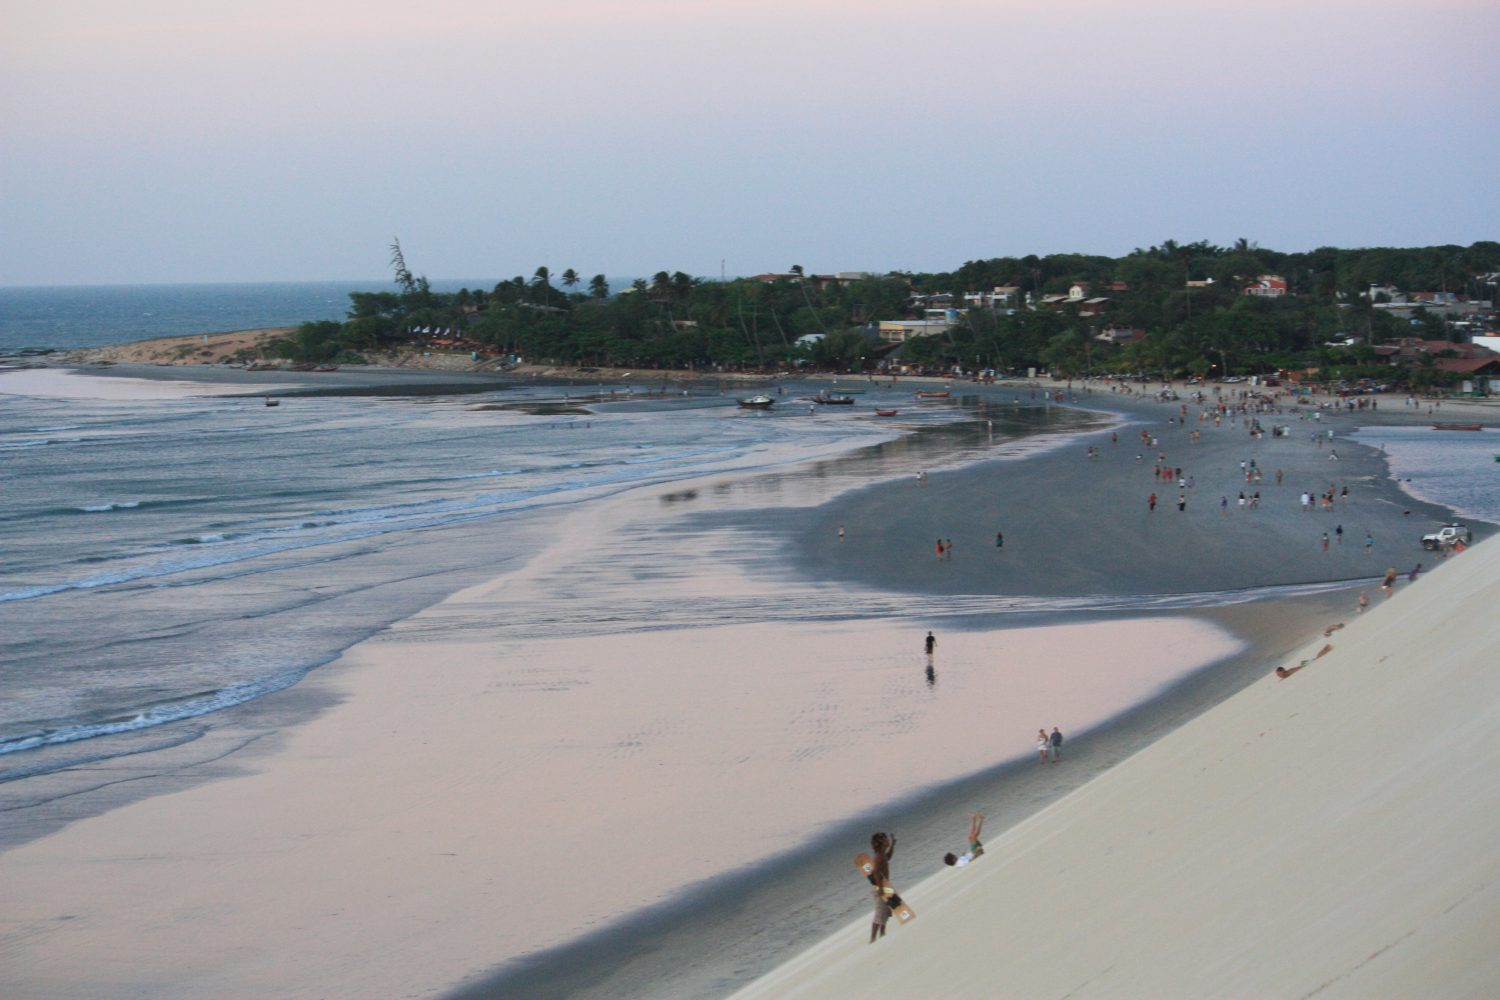 Jericoacoara beach at low tide from the top of a dune.